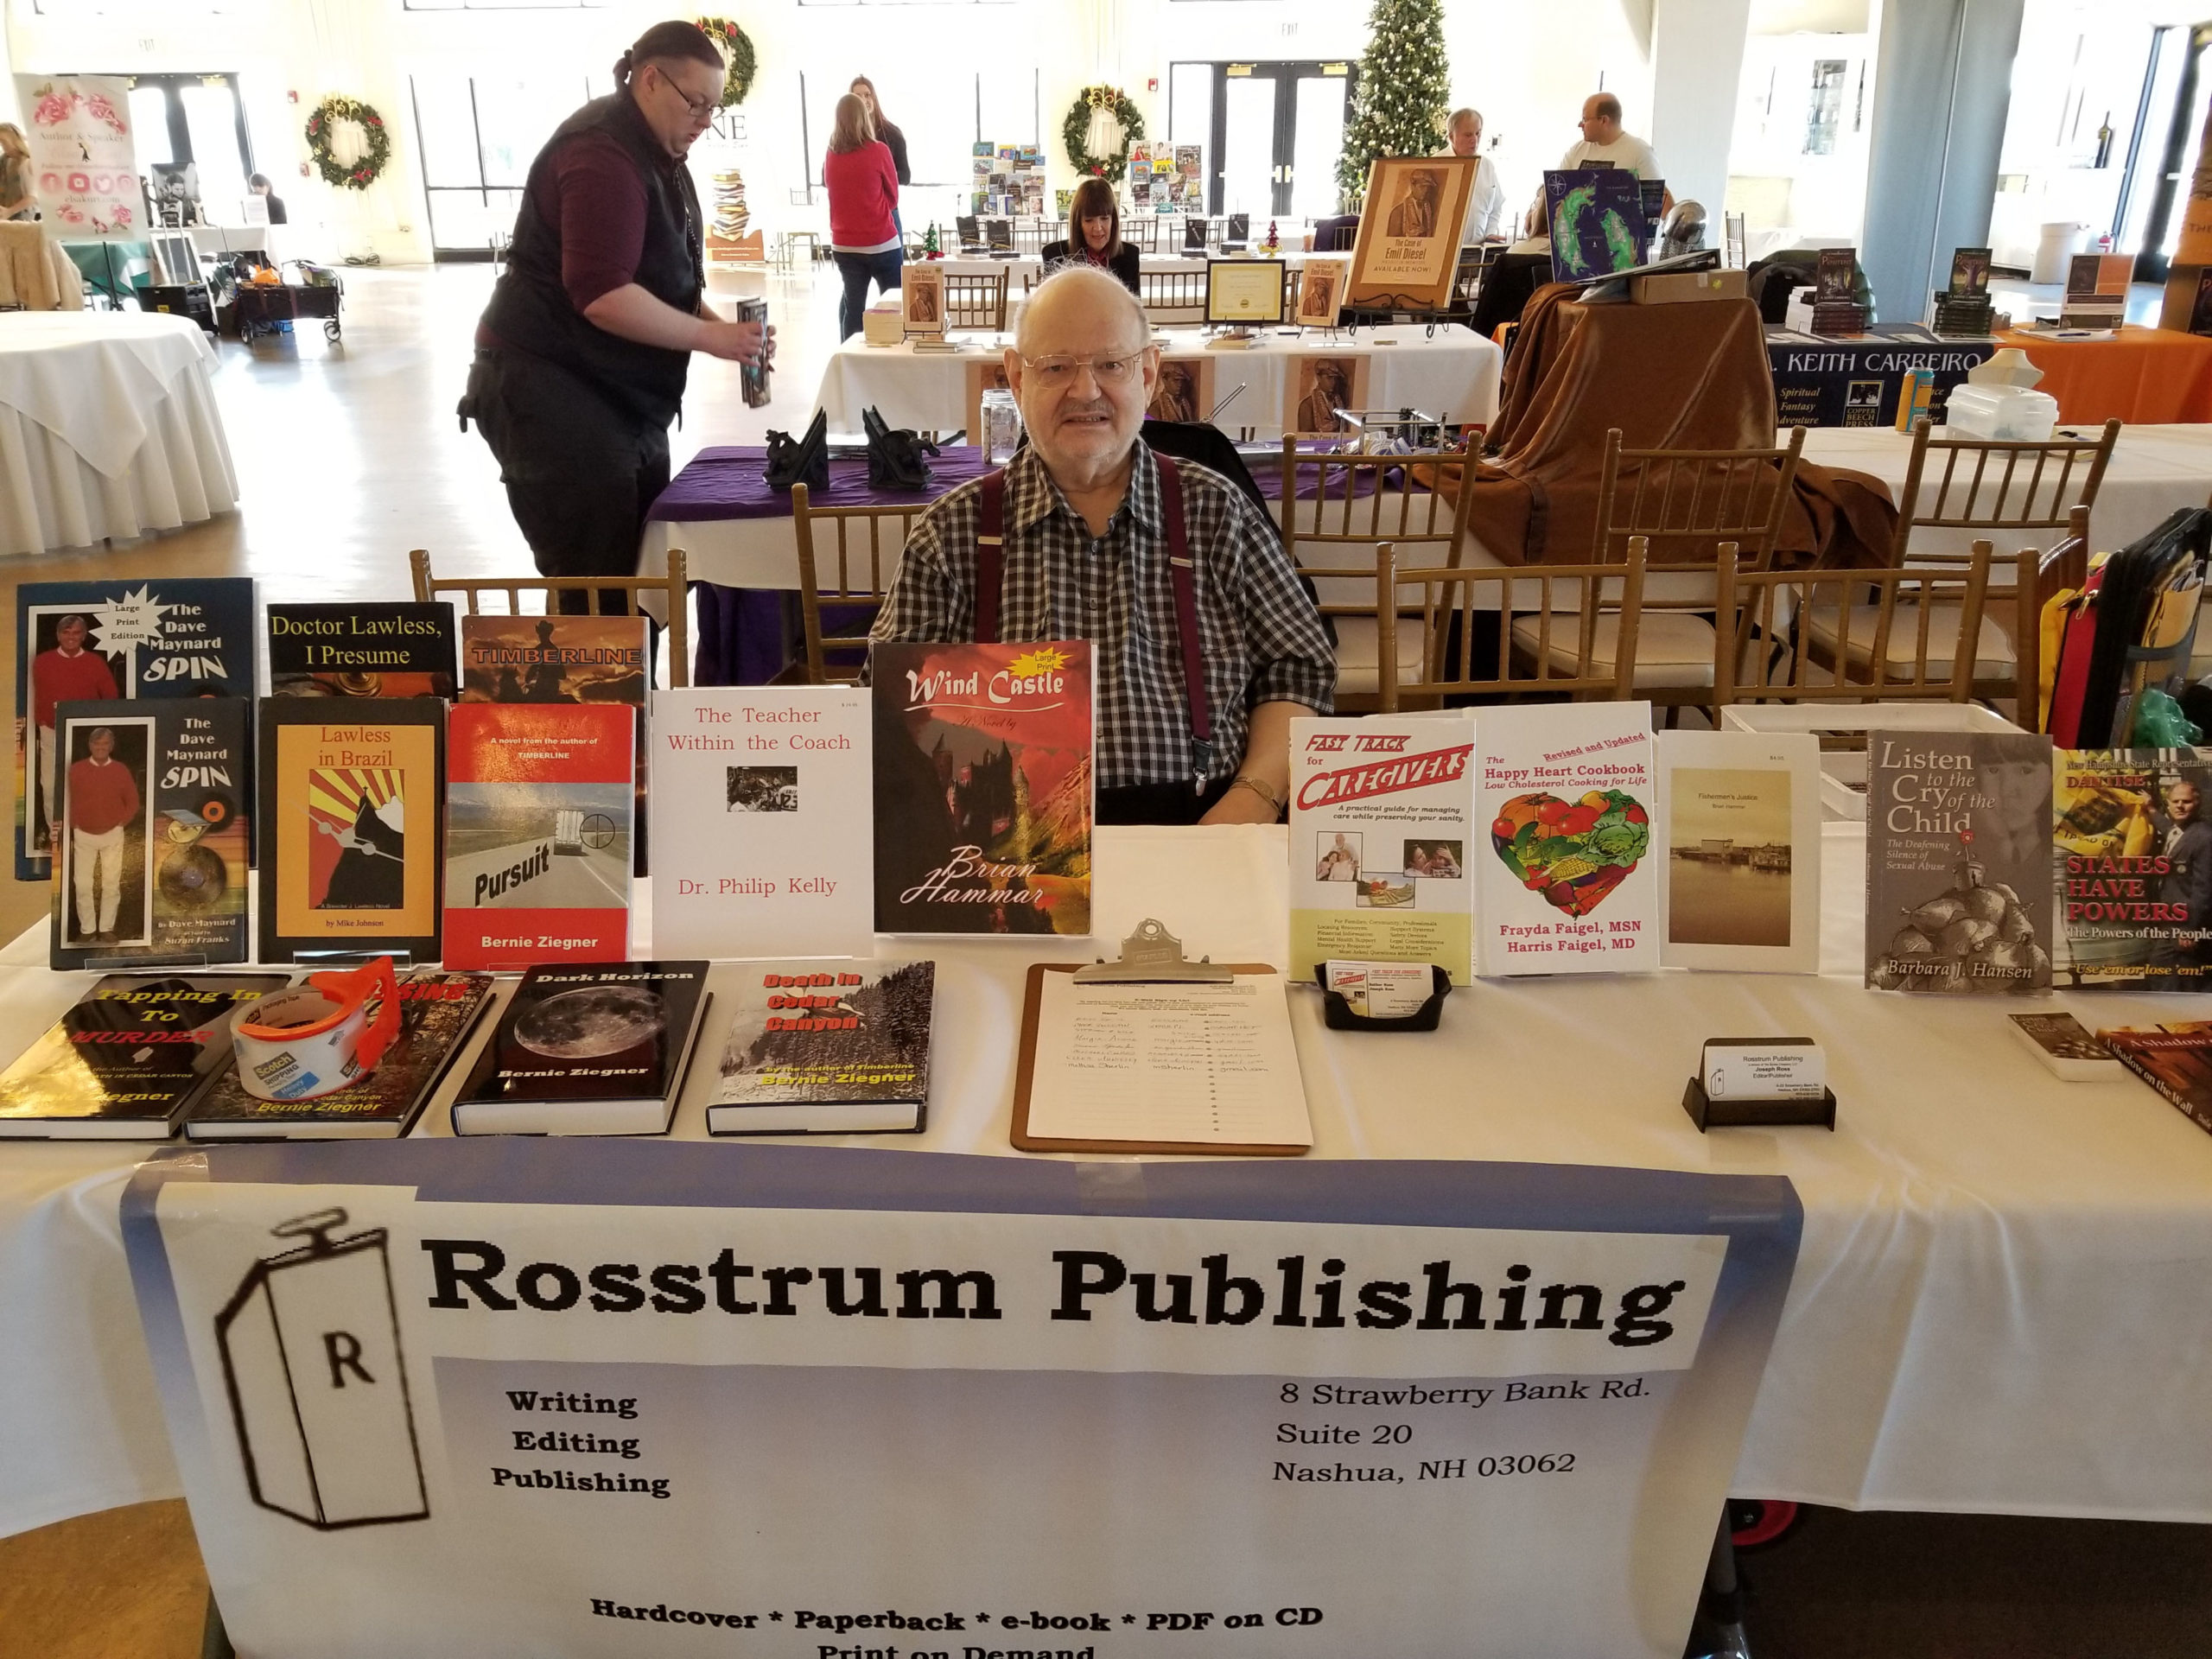 Joe Ross of Rosstrum Publishing